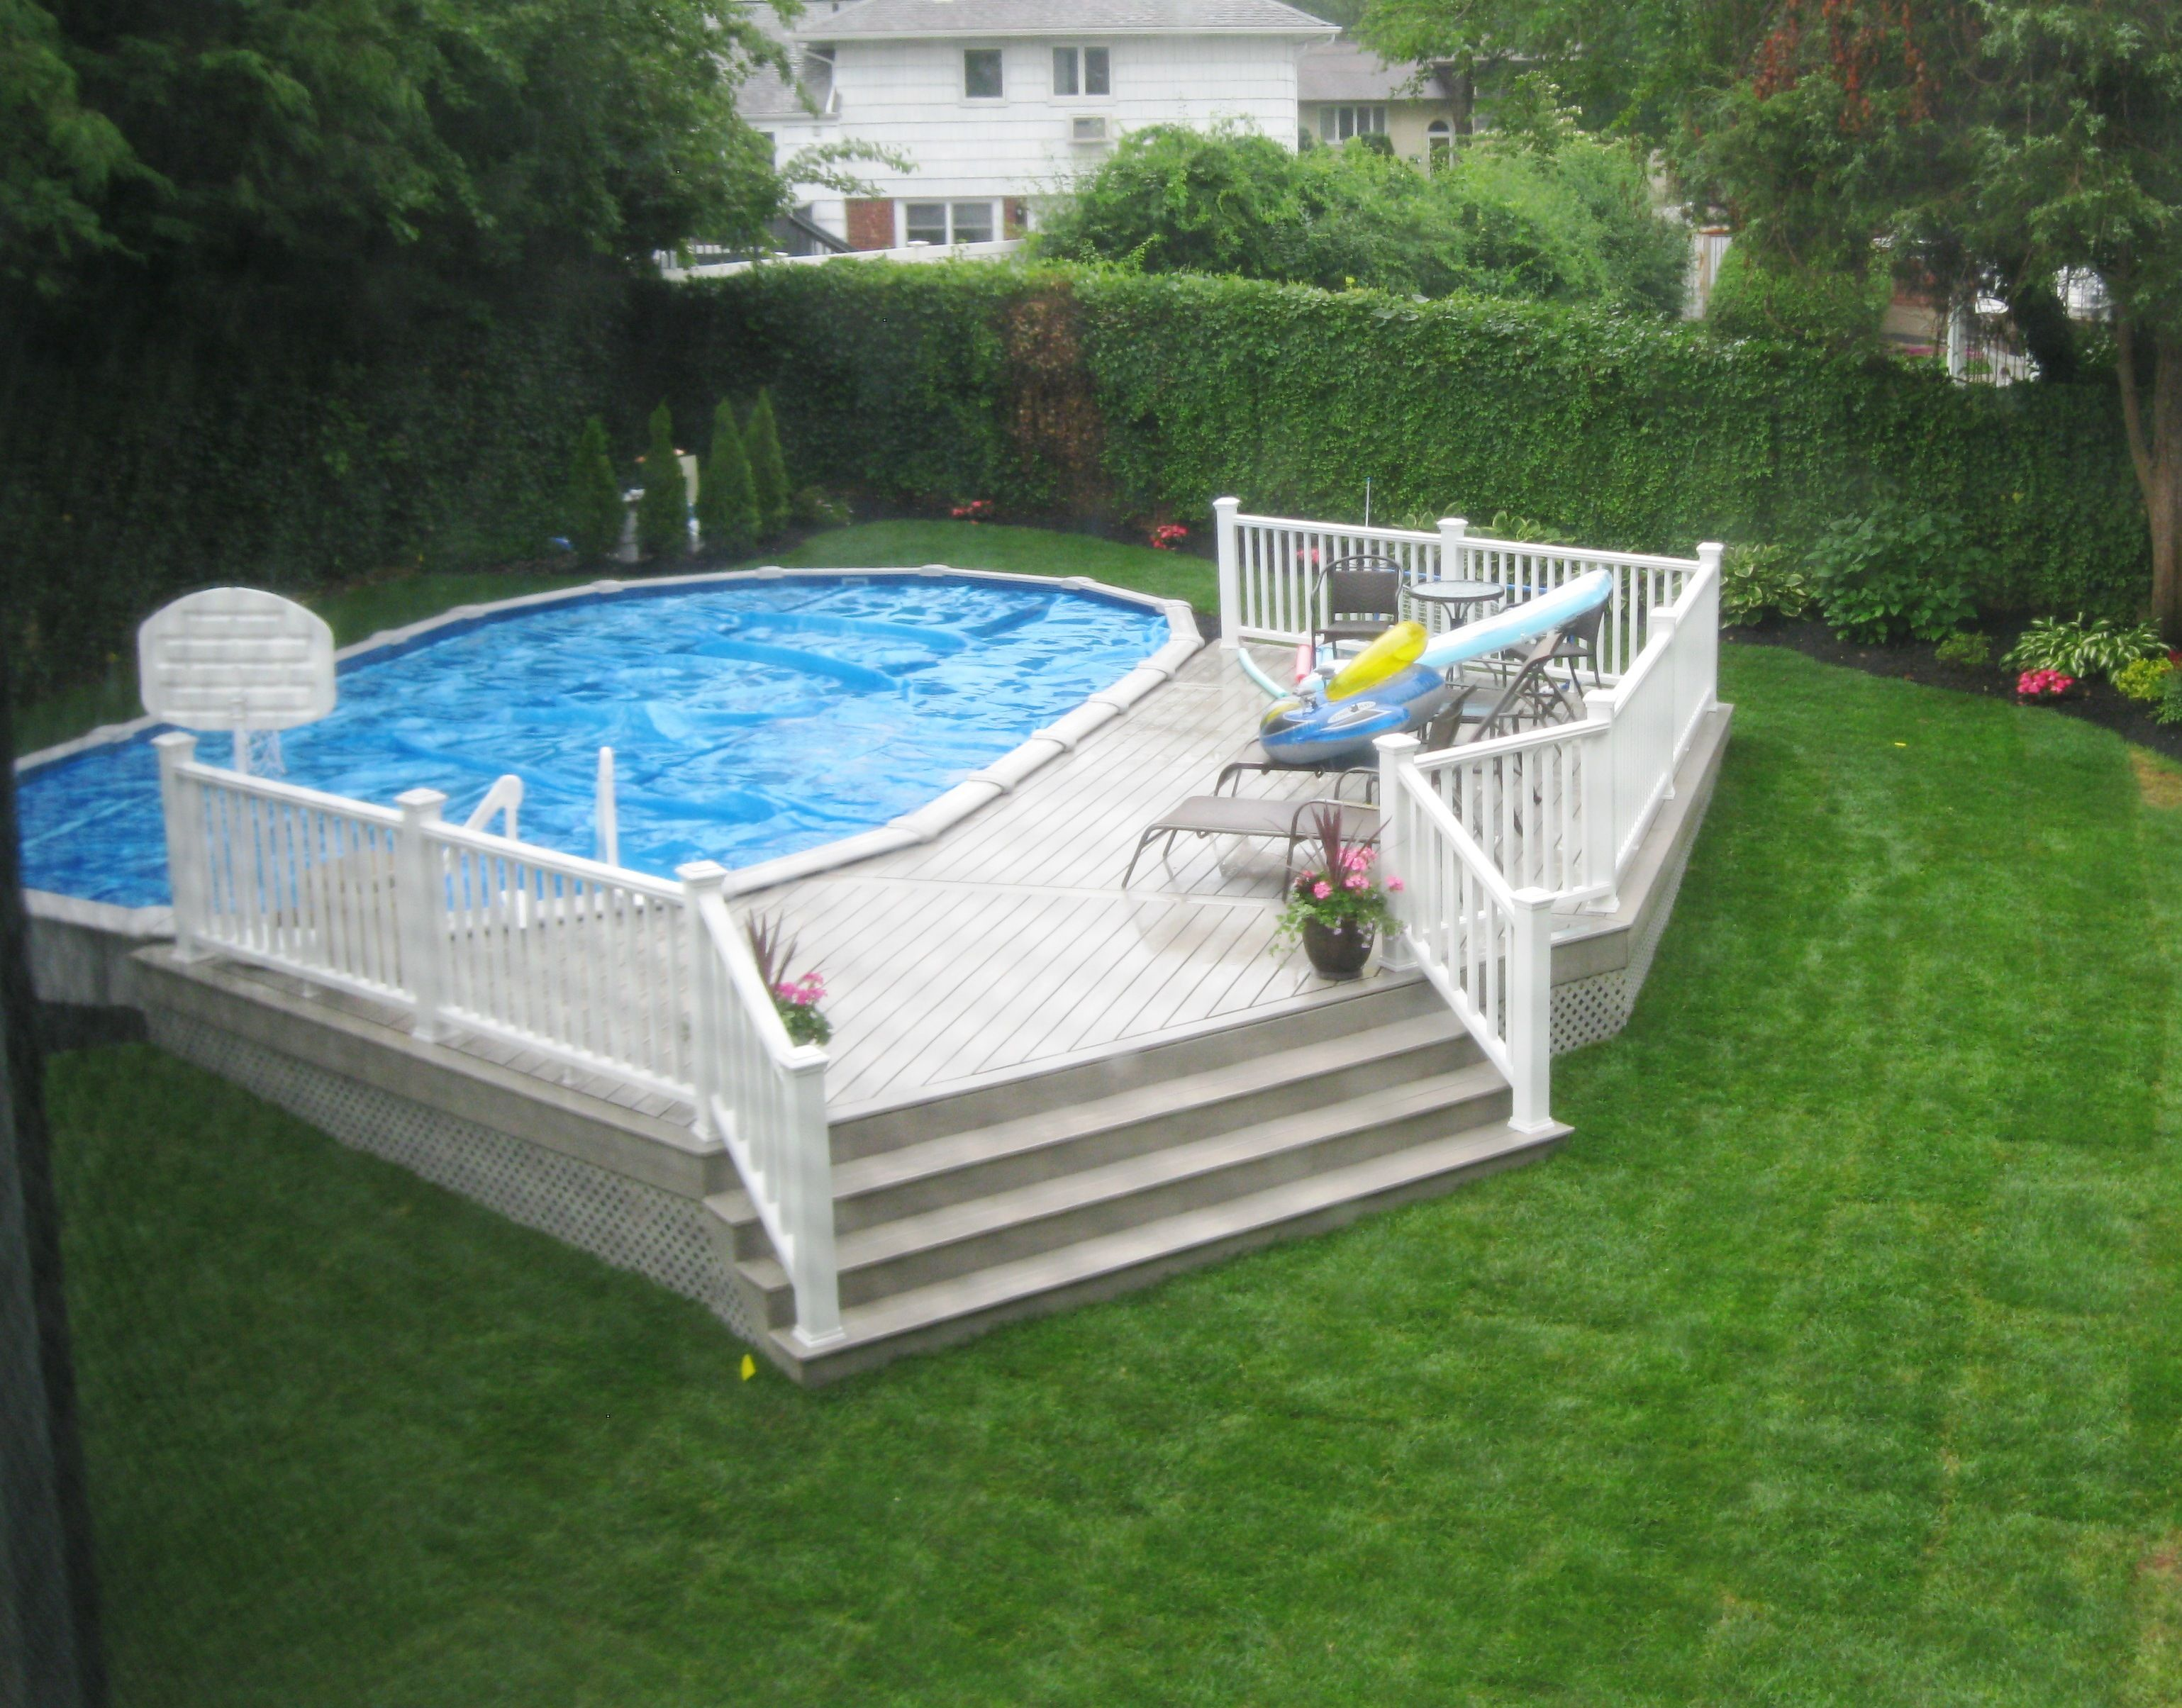 Inground Pool Patio Designs inground pool patio designs 3 story home with large in ground pool surrounded by brick patio 18x33 Semi Inground Pool With Deck